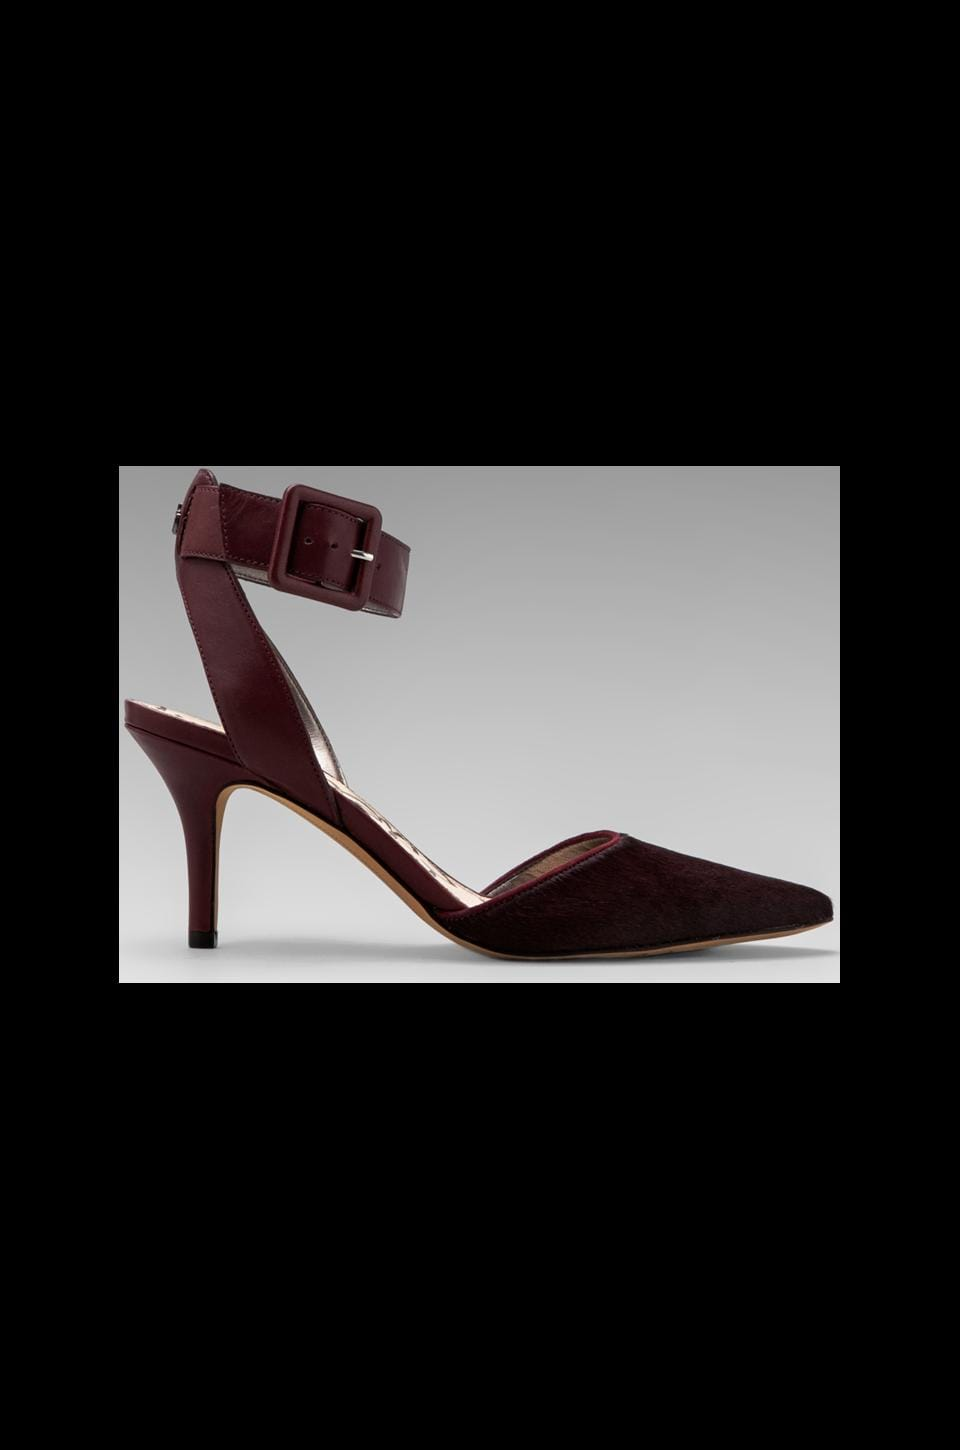 Sam Edelman Okala Heel in British Burgundy